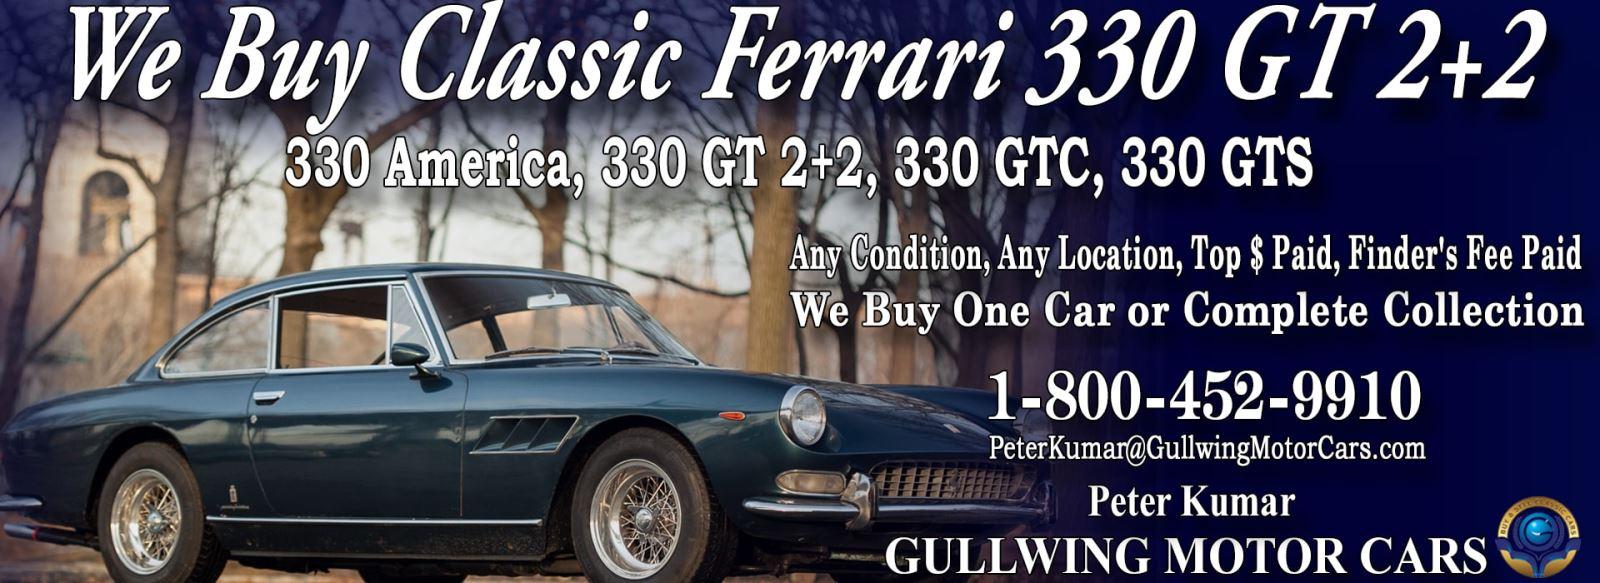 Classic Ferrari 330 GTC and 330 GTS for sale, we buy vintage Ferrari 330GTC and 330GTS. Call Peter Kumar. Gullwing Motor